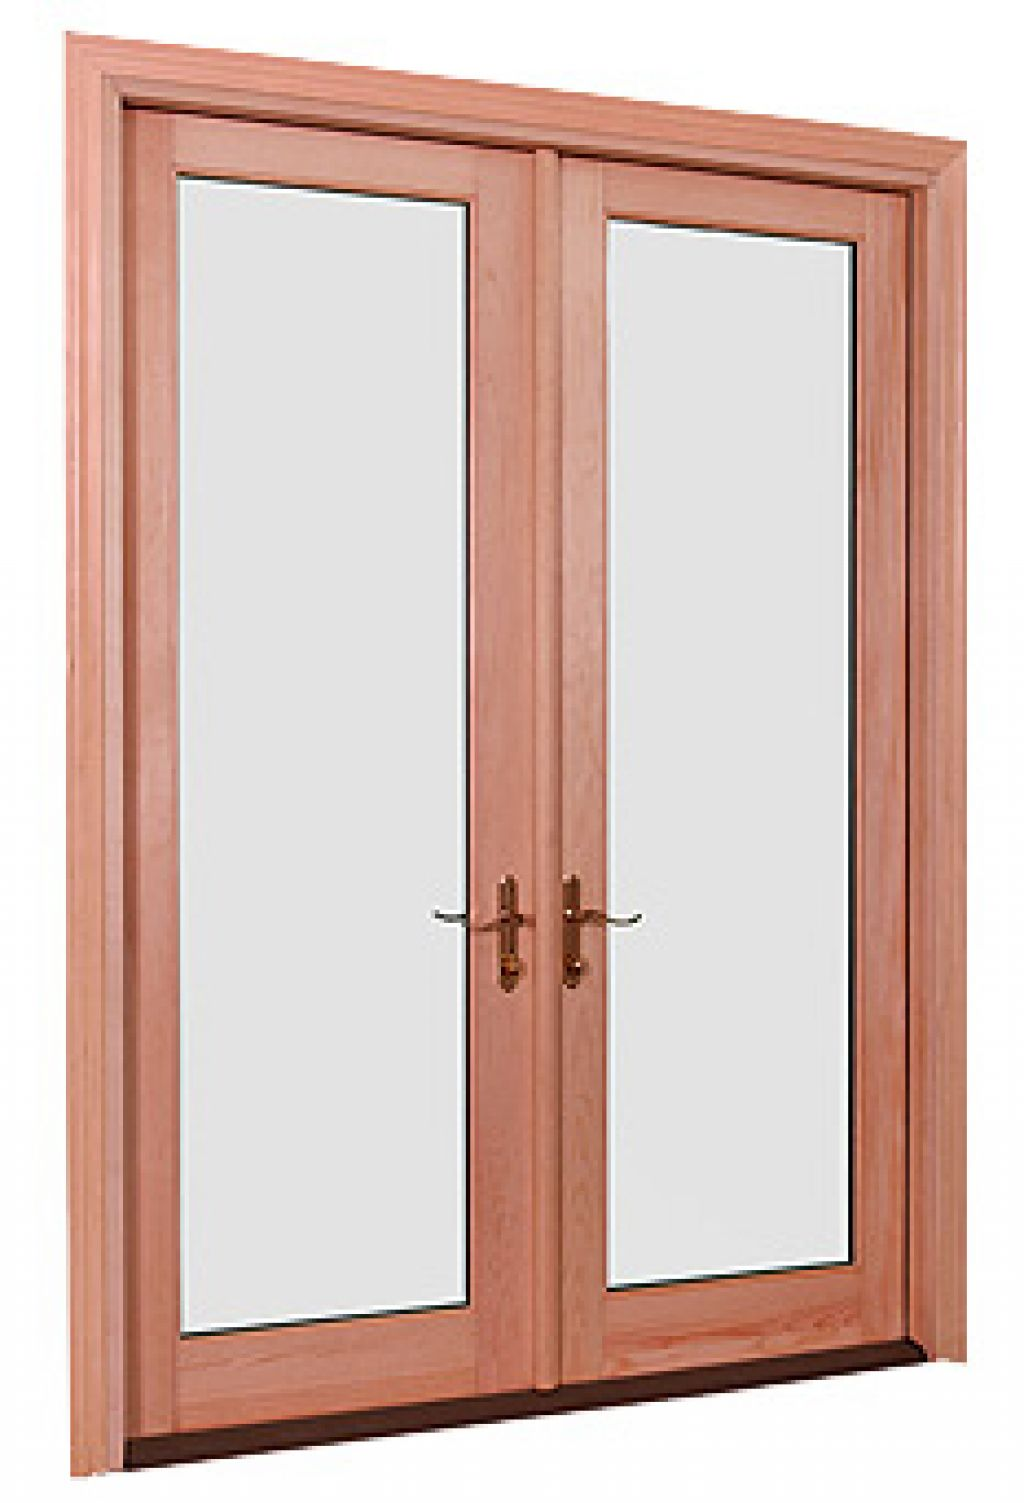 20 reasons to install french doors exterior andersen for External french doors